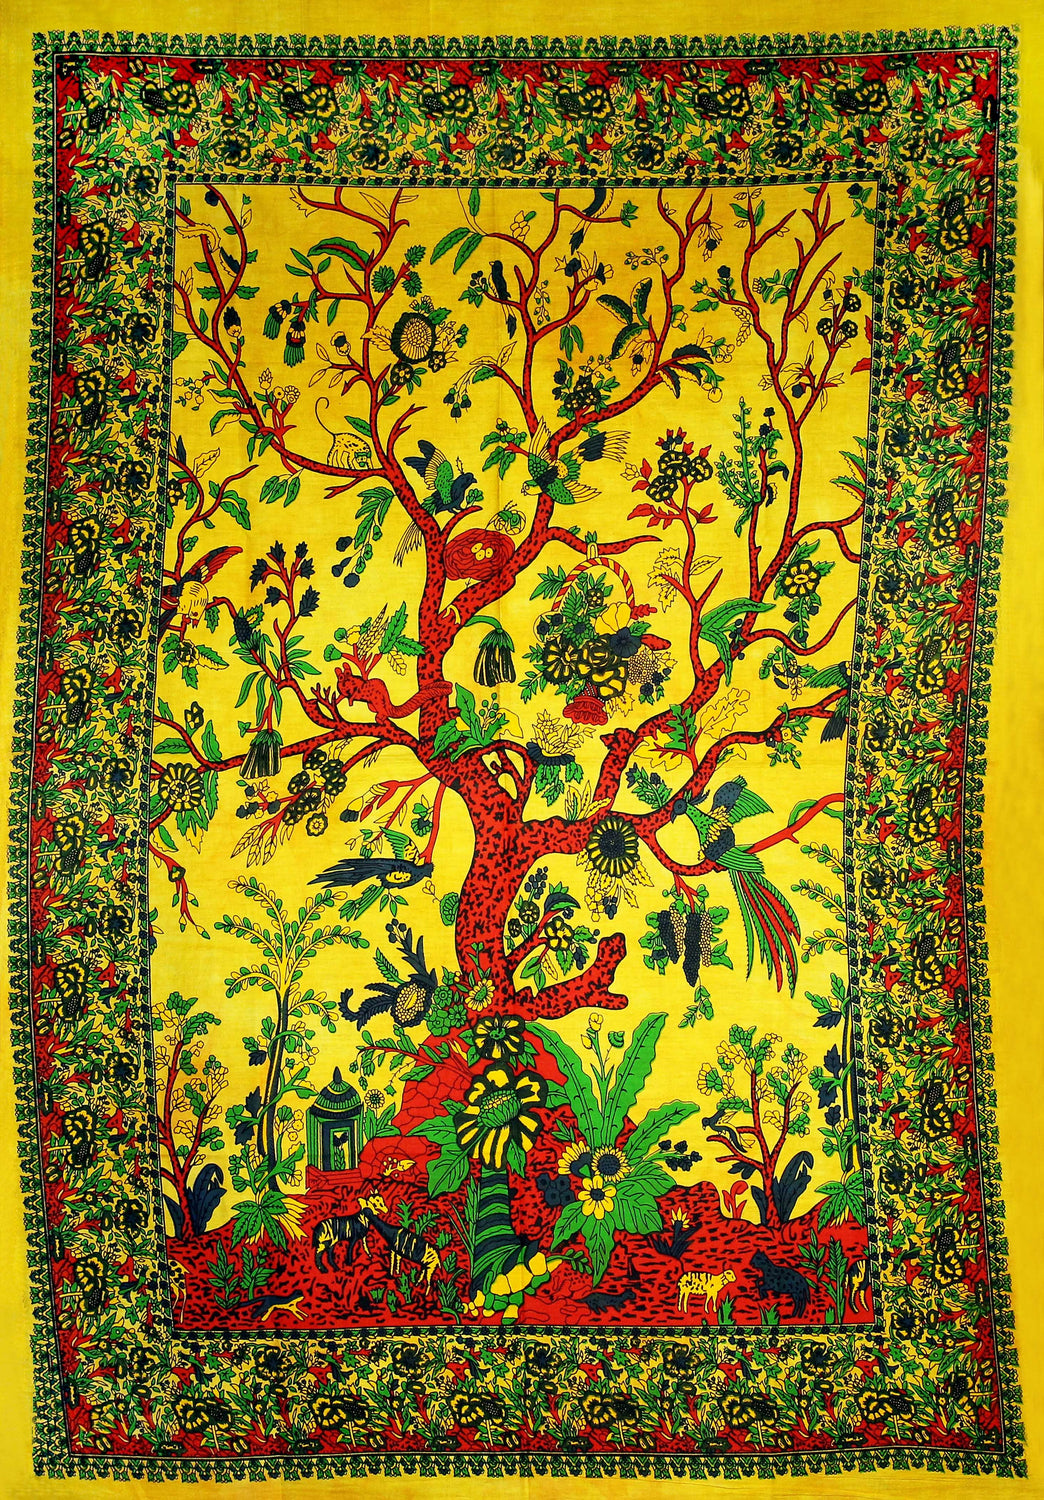 Hand printed Mini Tree of Life Tapestries Wall Hanging